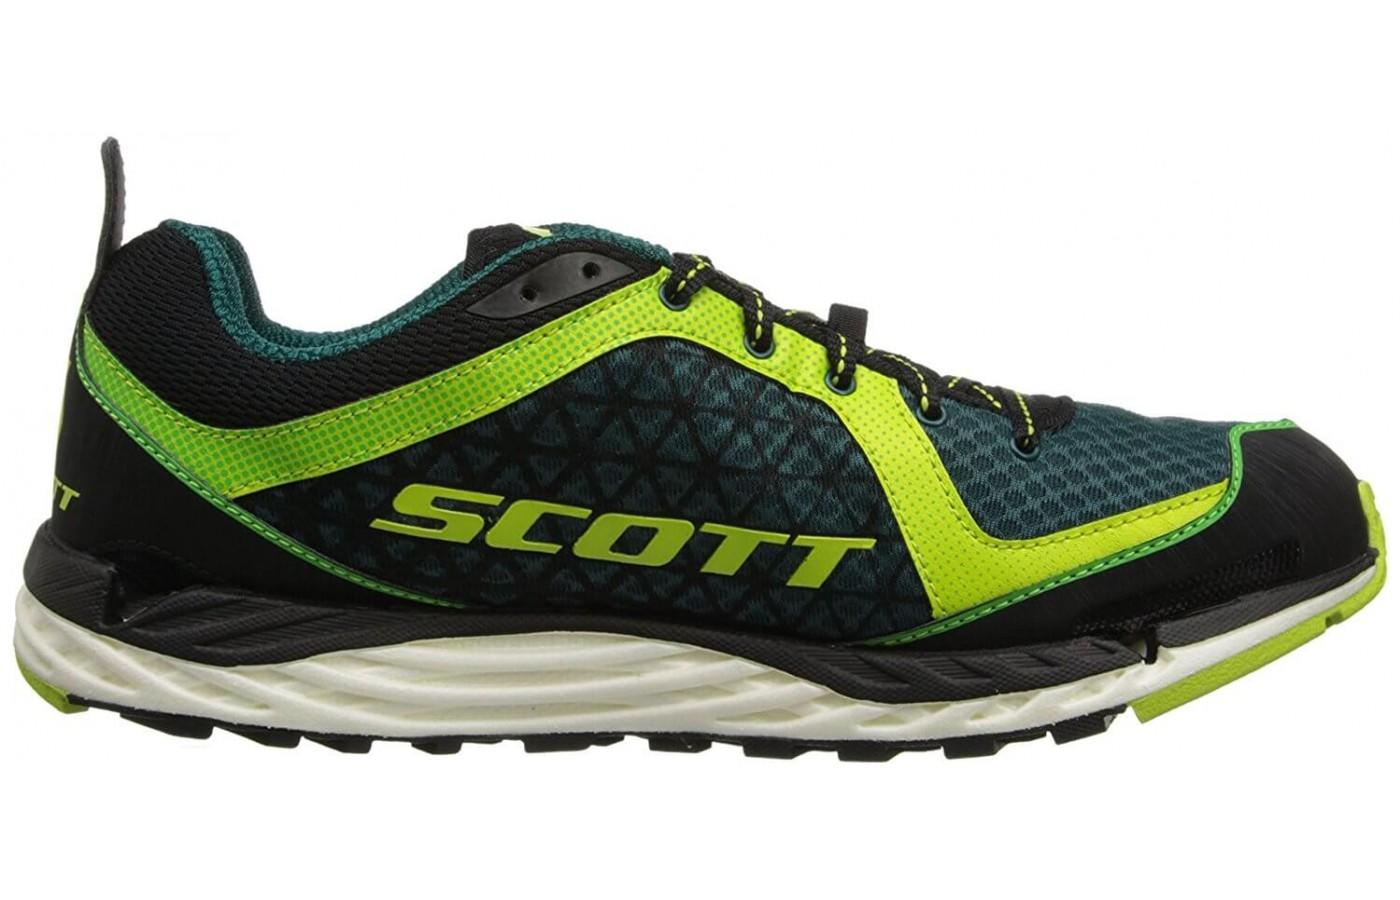 Scott T2 Kinabalu flexible and supportive midsole